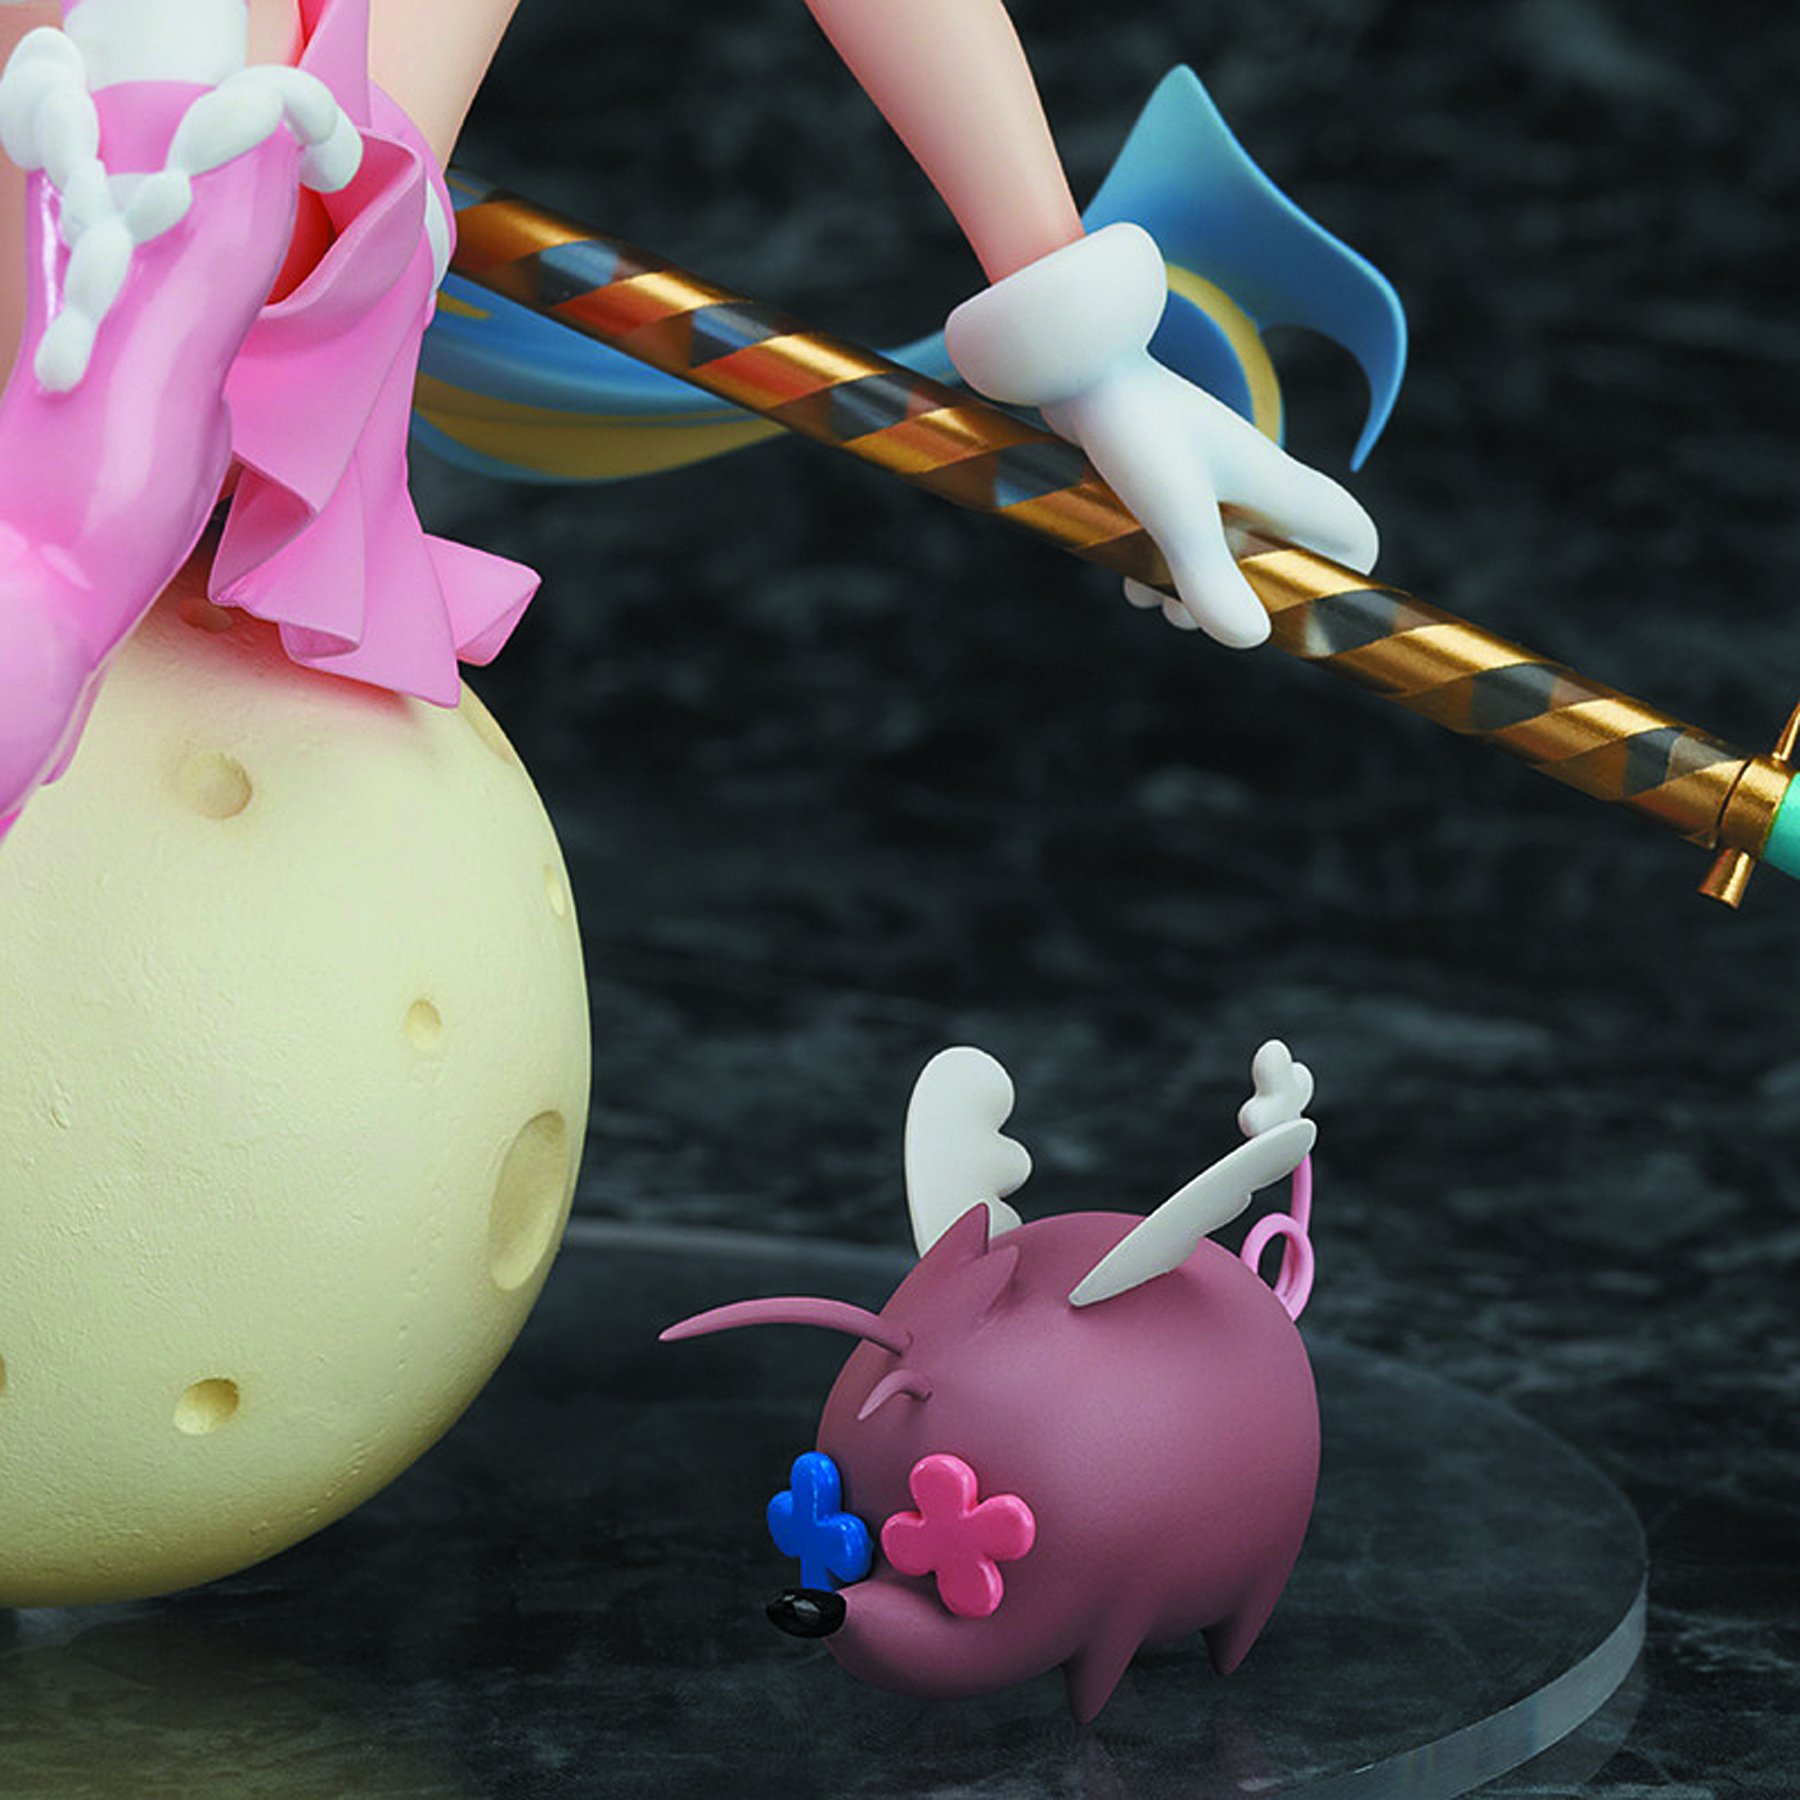 GURREN LAGANN MAGICAL NIA PVC FIG